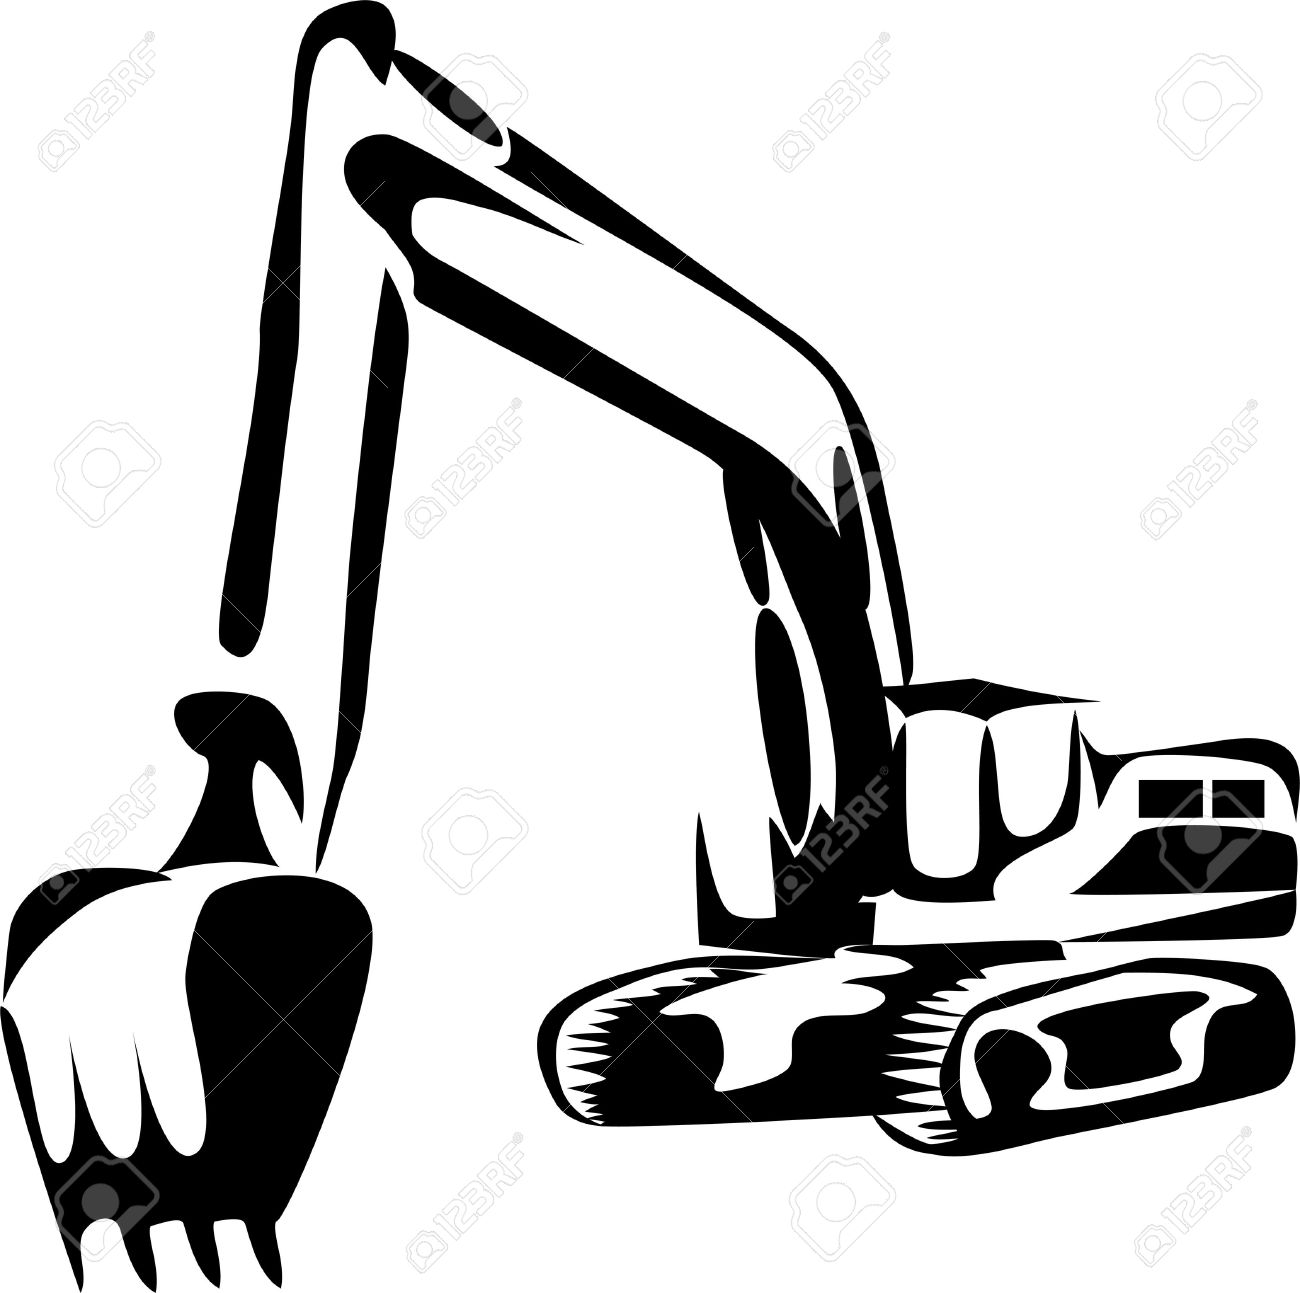 Backhoe clipart. Drawing at getdrawings com